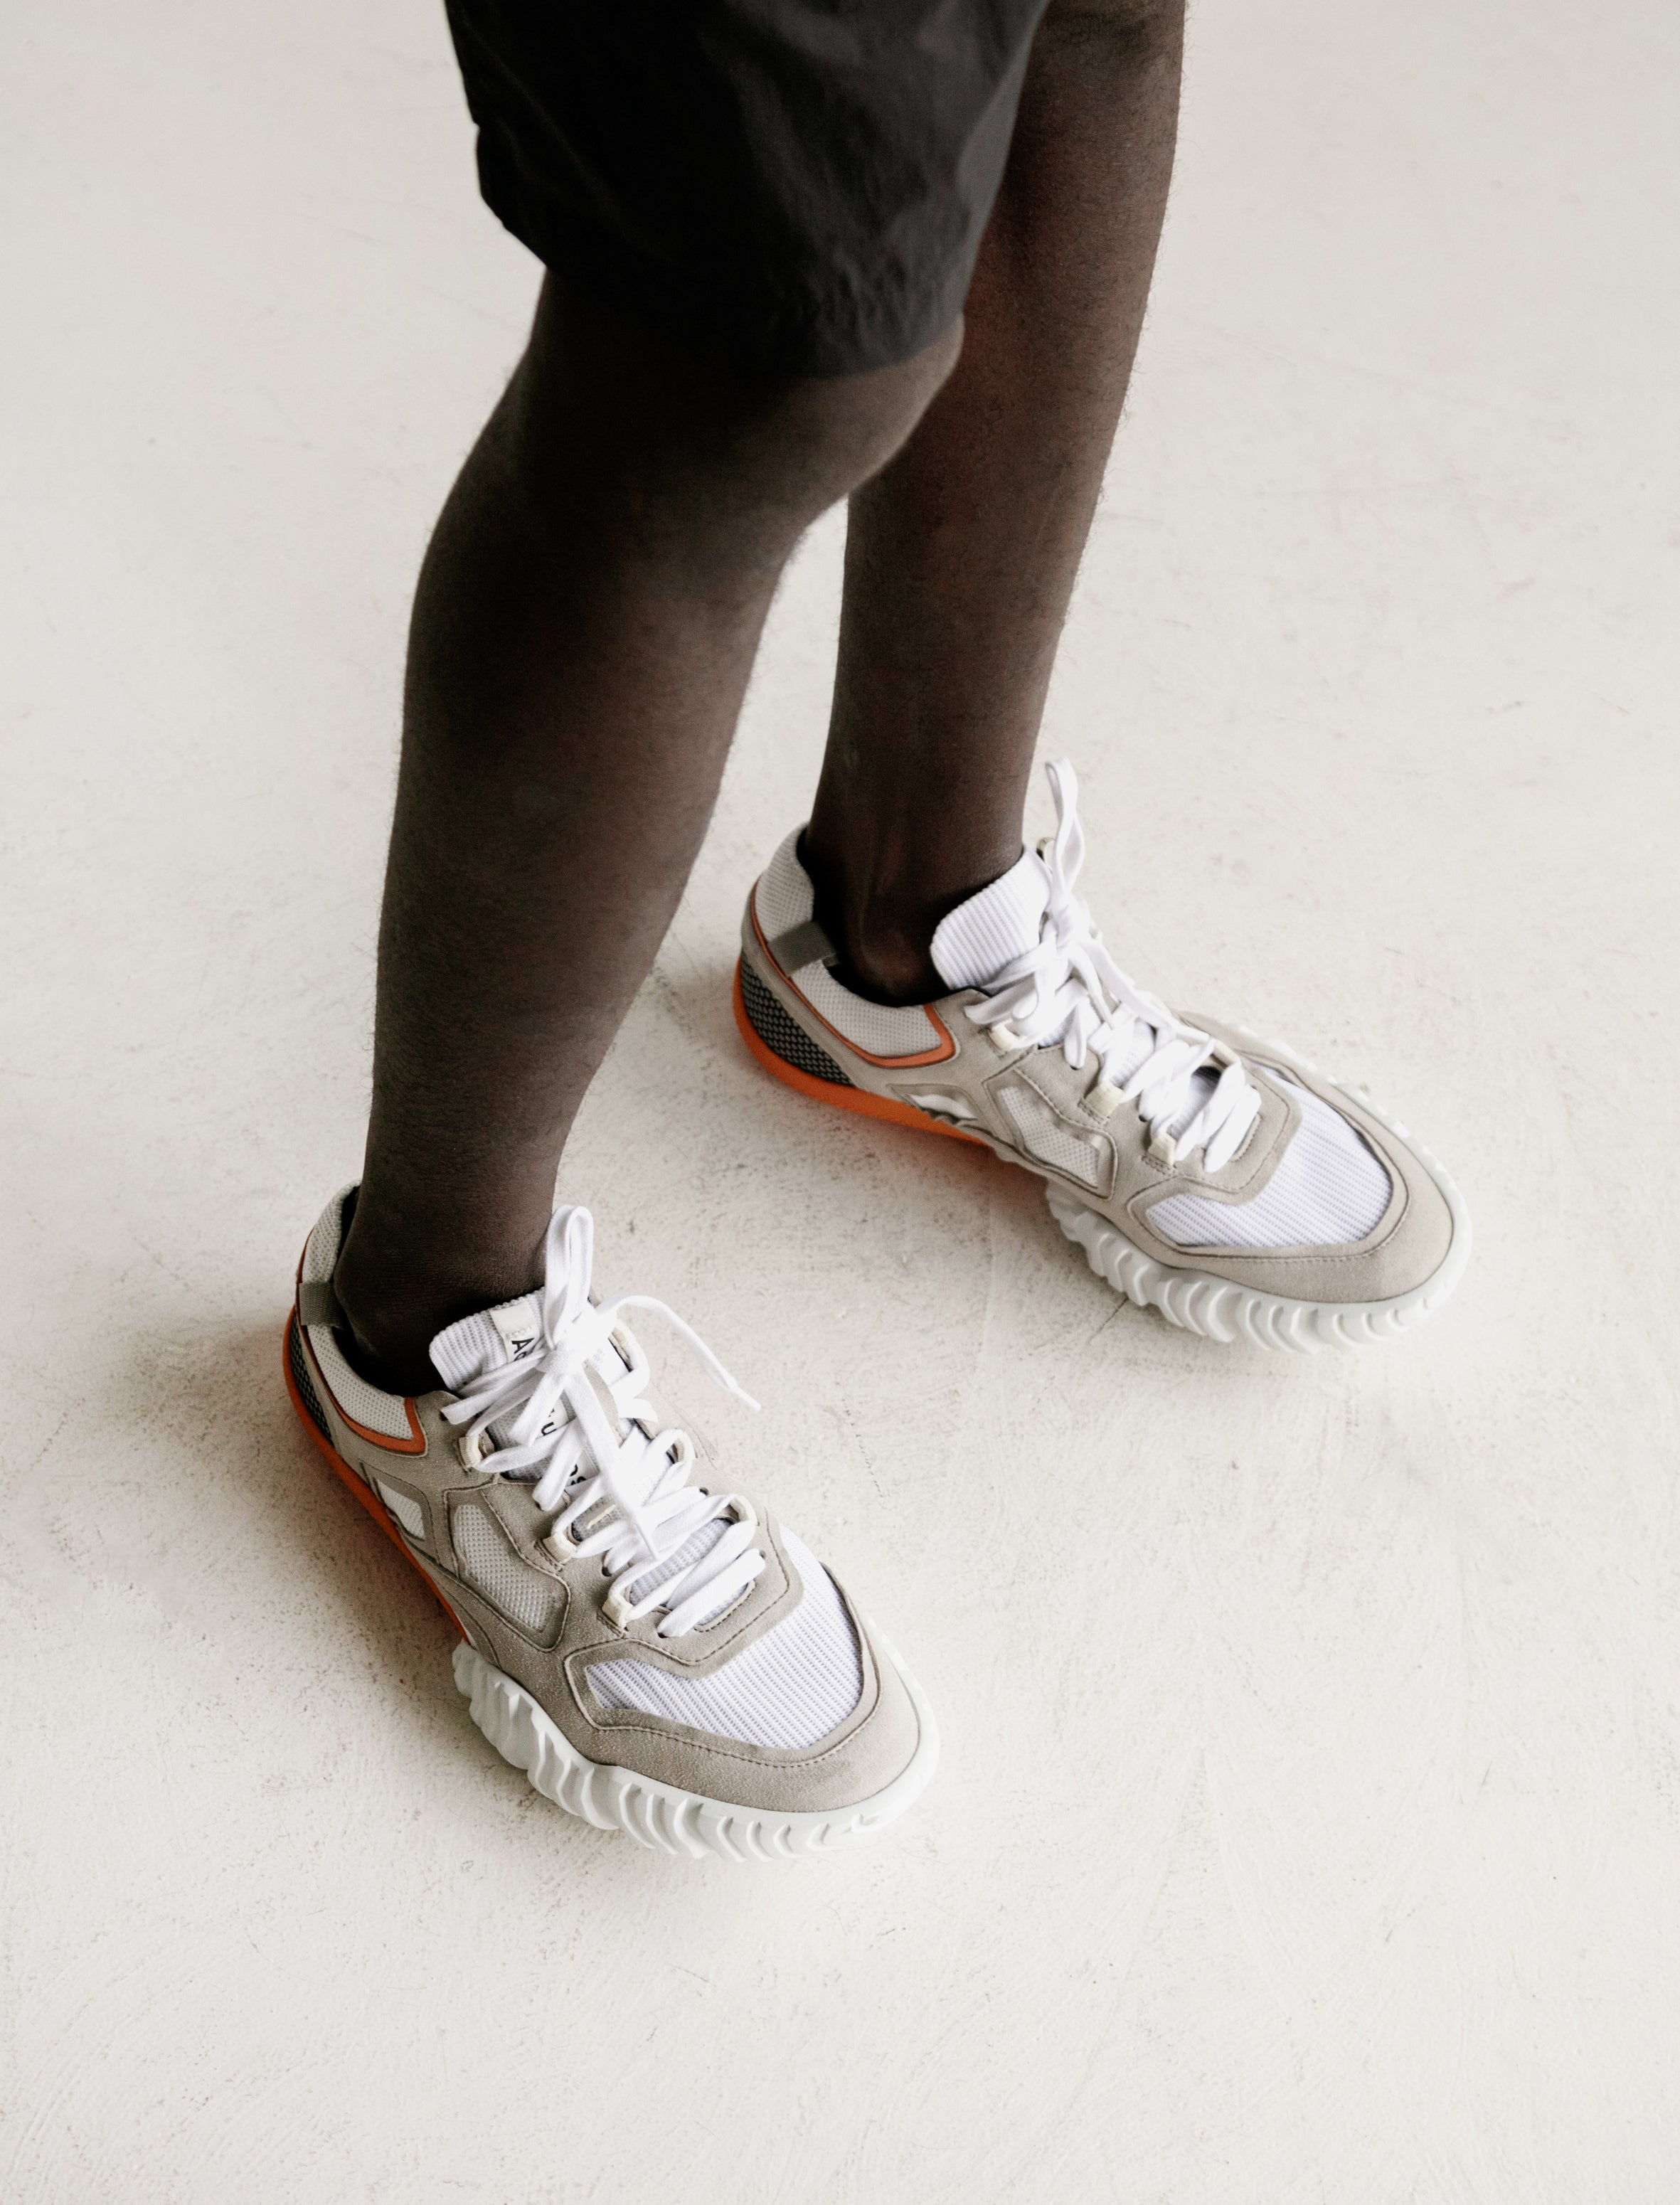 Acne Studios Berun Shoe Grey/White